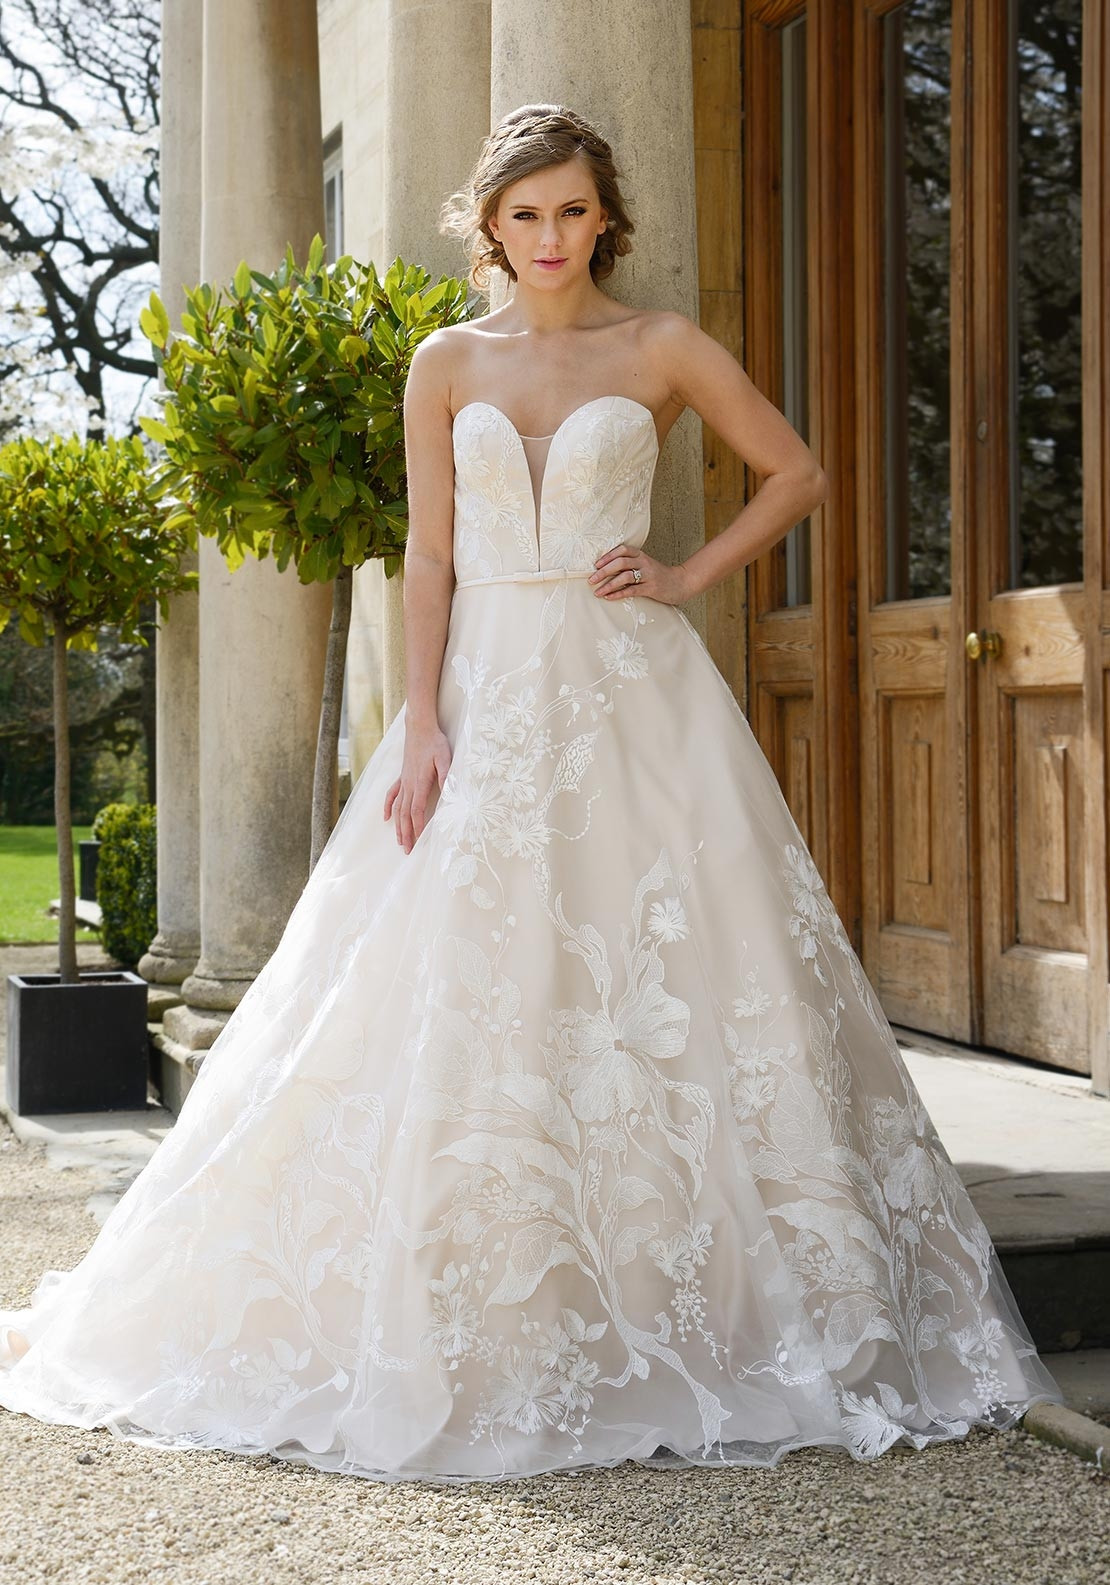 Catherine Parry Sonnets Collection Scarlett Wedding Dress, Ivory